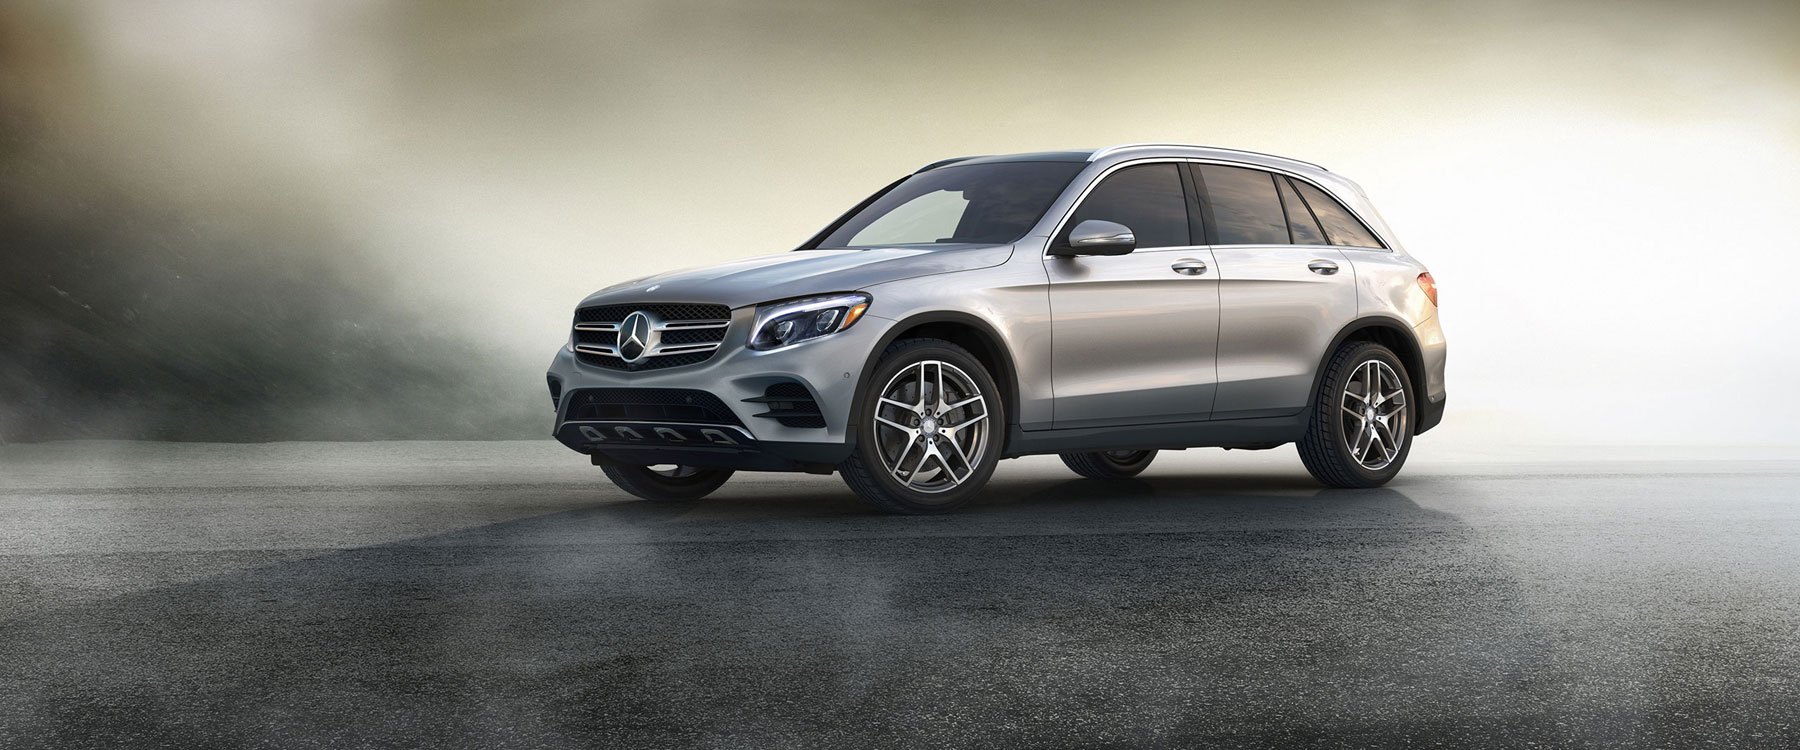 The rugged yet luxe 2017 mercedes benz glc 300 suv for Mercedes benz excess mileage charges